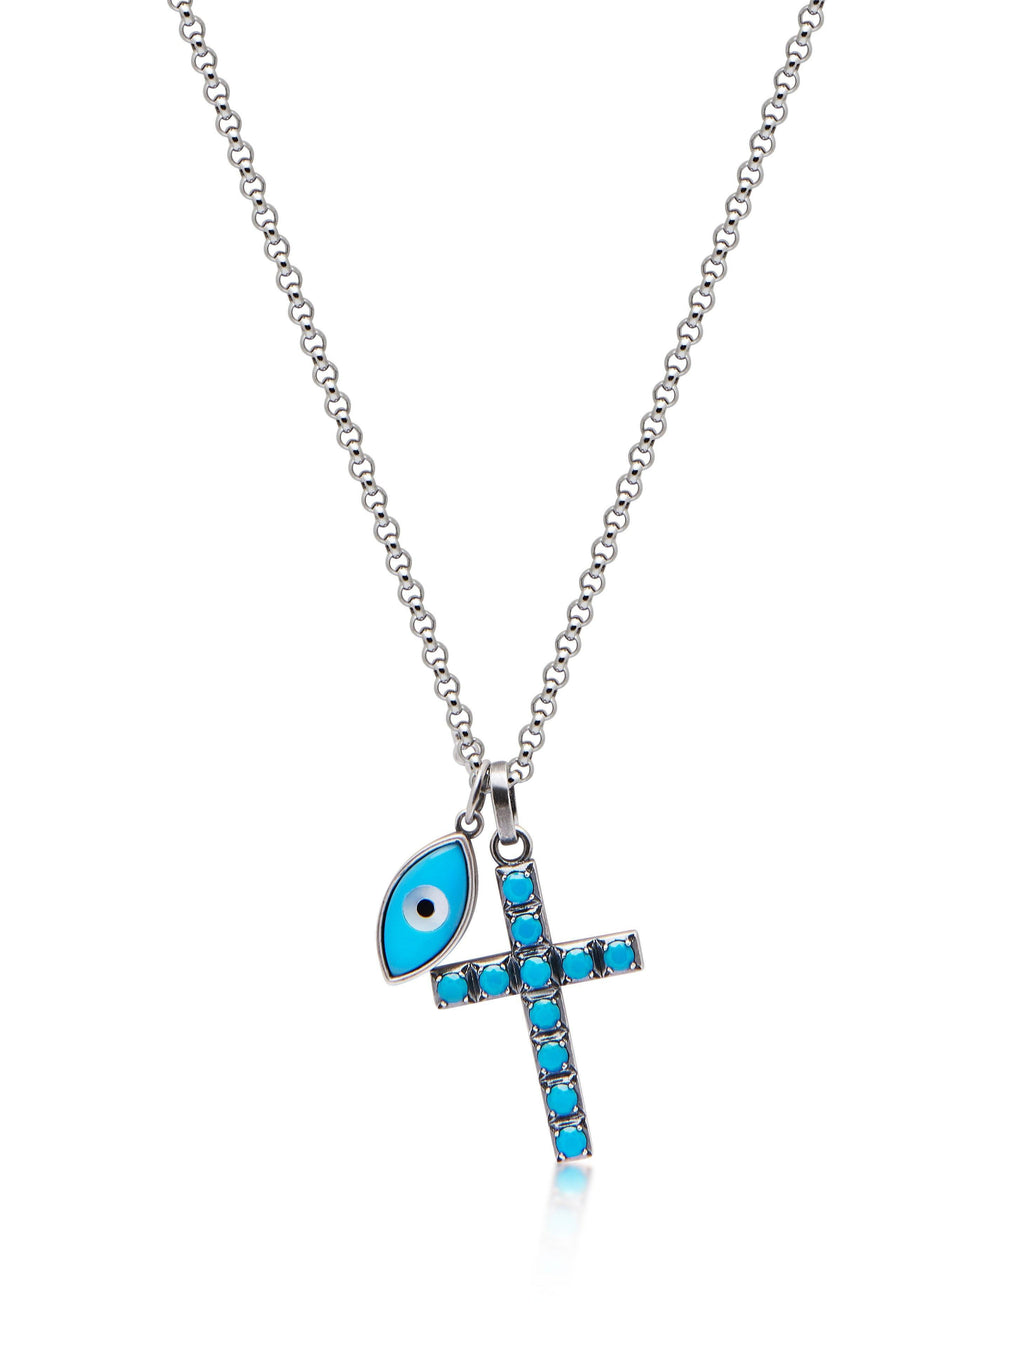 PRE-ORDER: Men's Silver Necklace with Turquoise Cross and Evil Eye Pendant